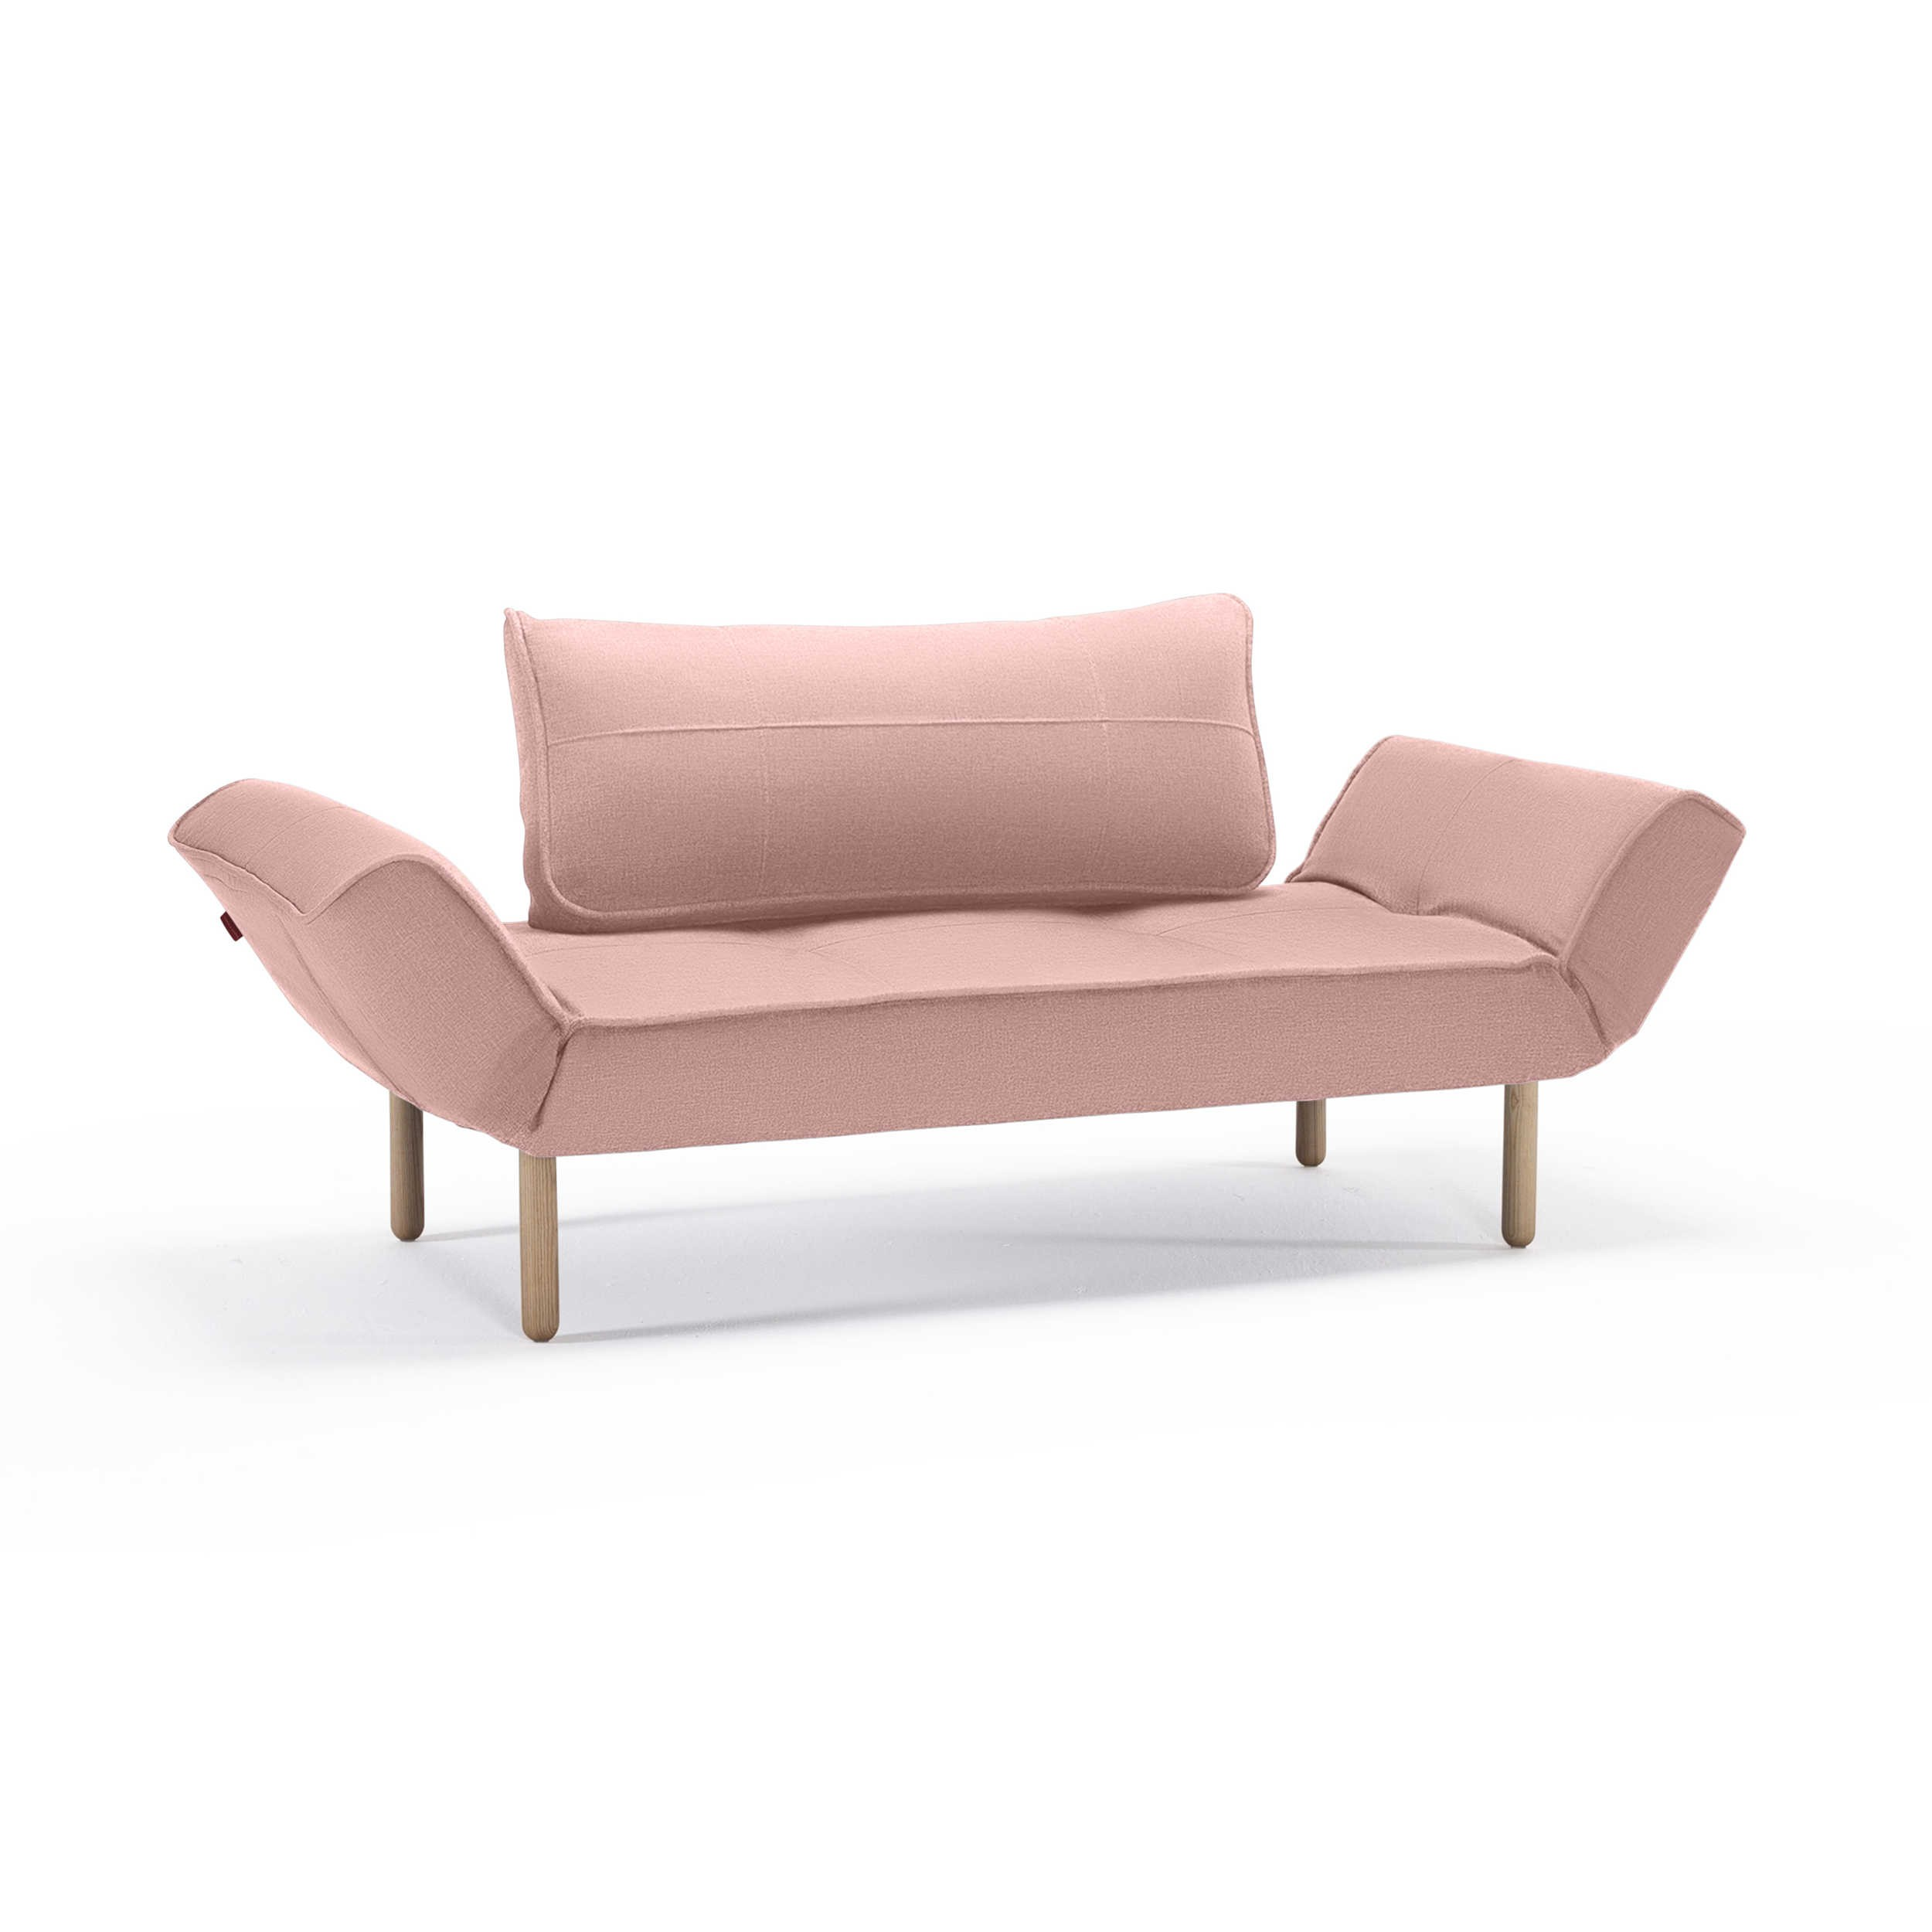 Innovation Schlafsofa Innovation Schlafsofa Zeal Stem Rosa Stoff Online Kaufen